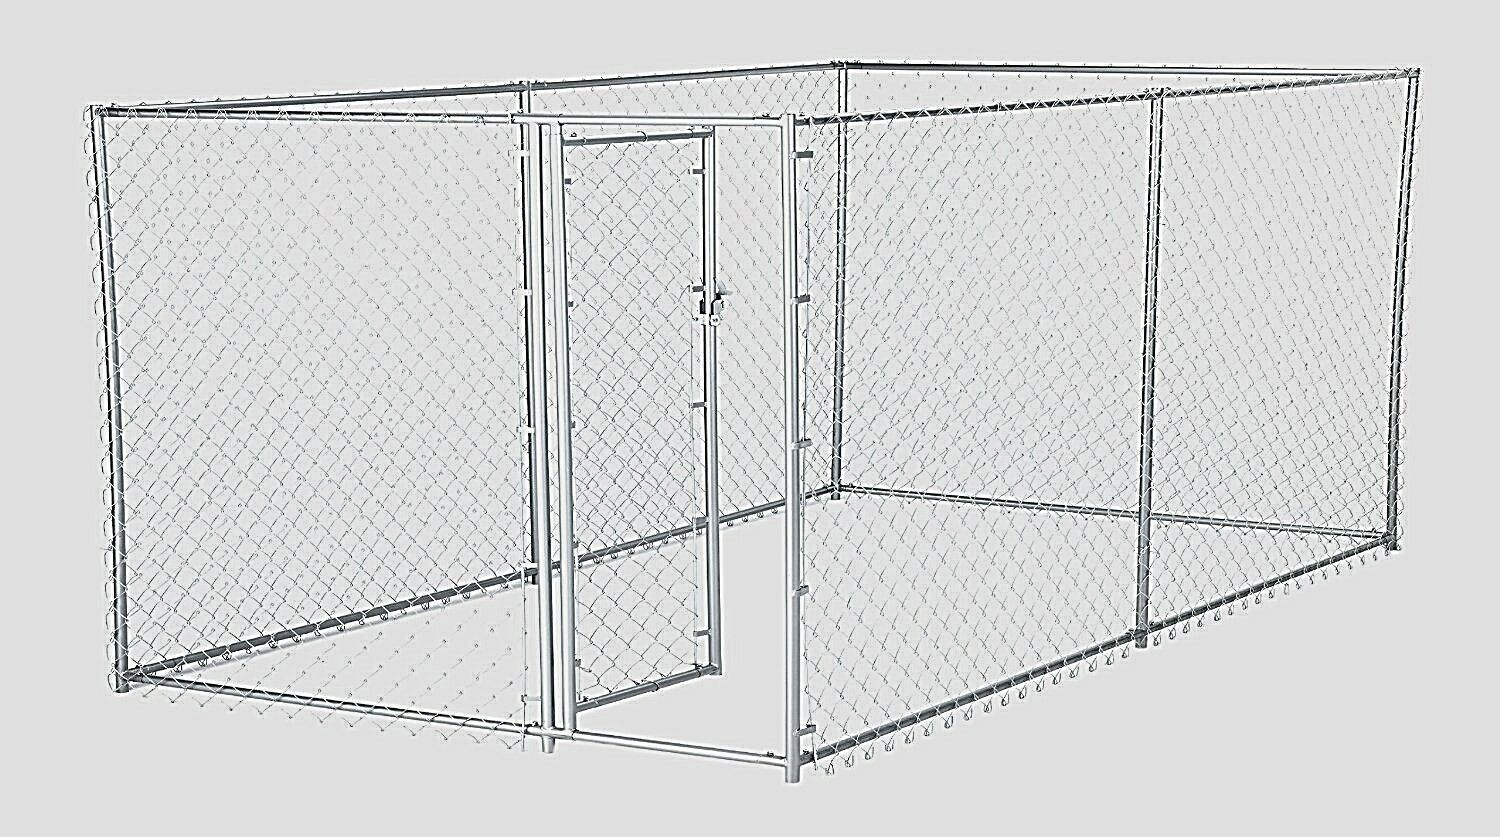 chain link dog kennel outdoor fence backyard large pet cage pen